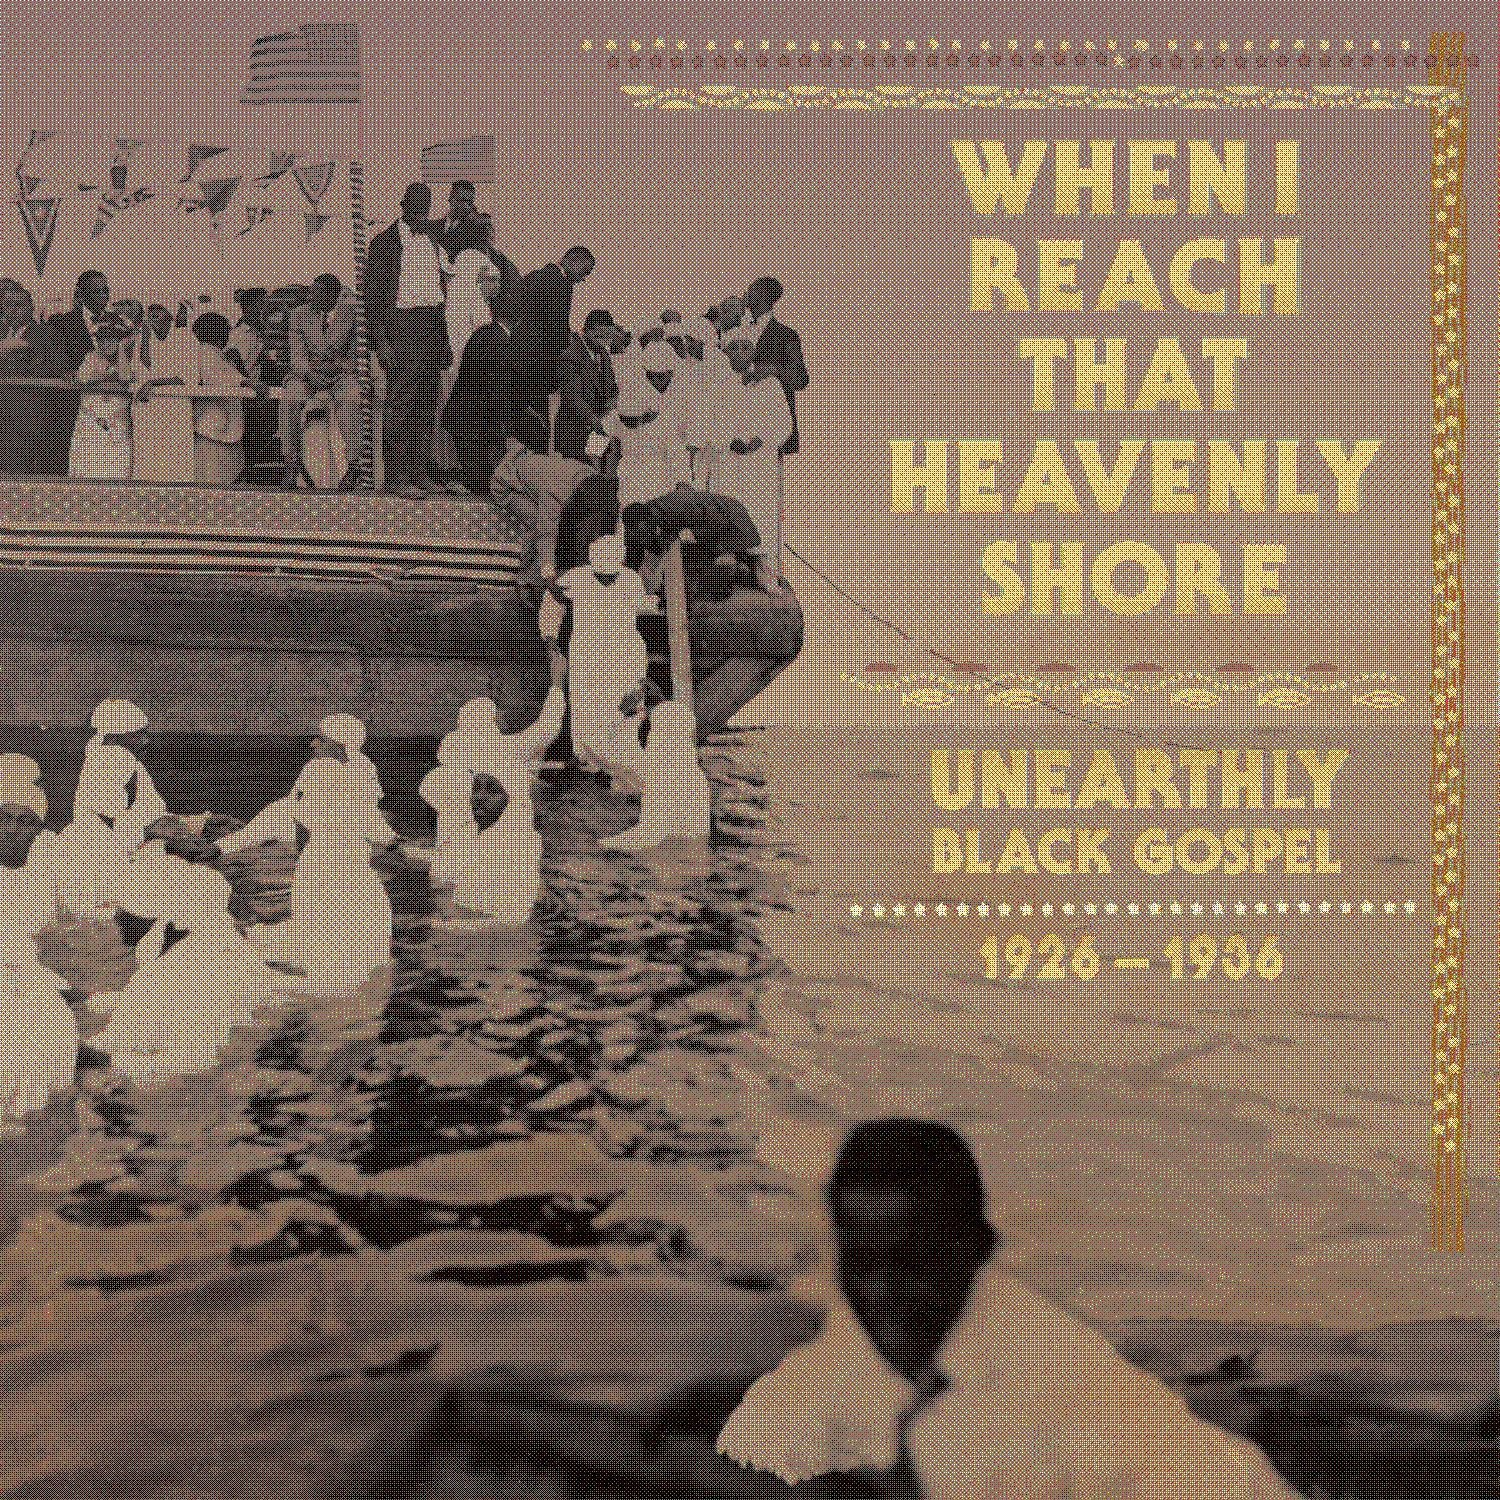 When I Reach That Heavenly Shore: Unearthly & Raw Black Gospel... : Various: Amazon.es: Música